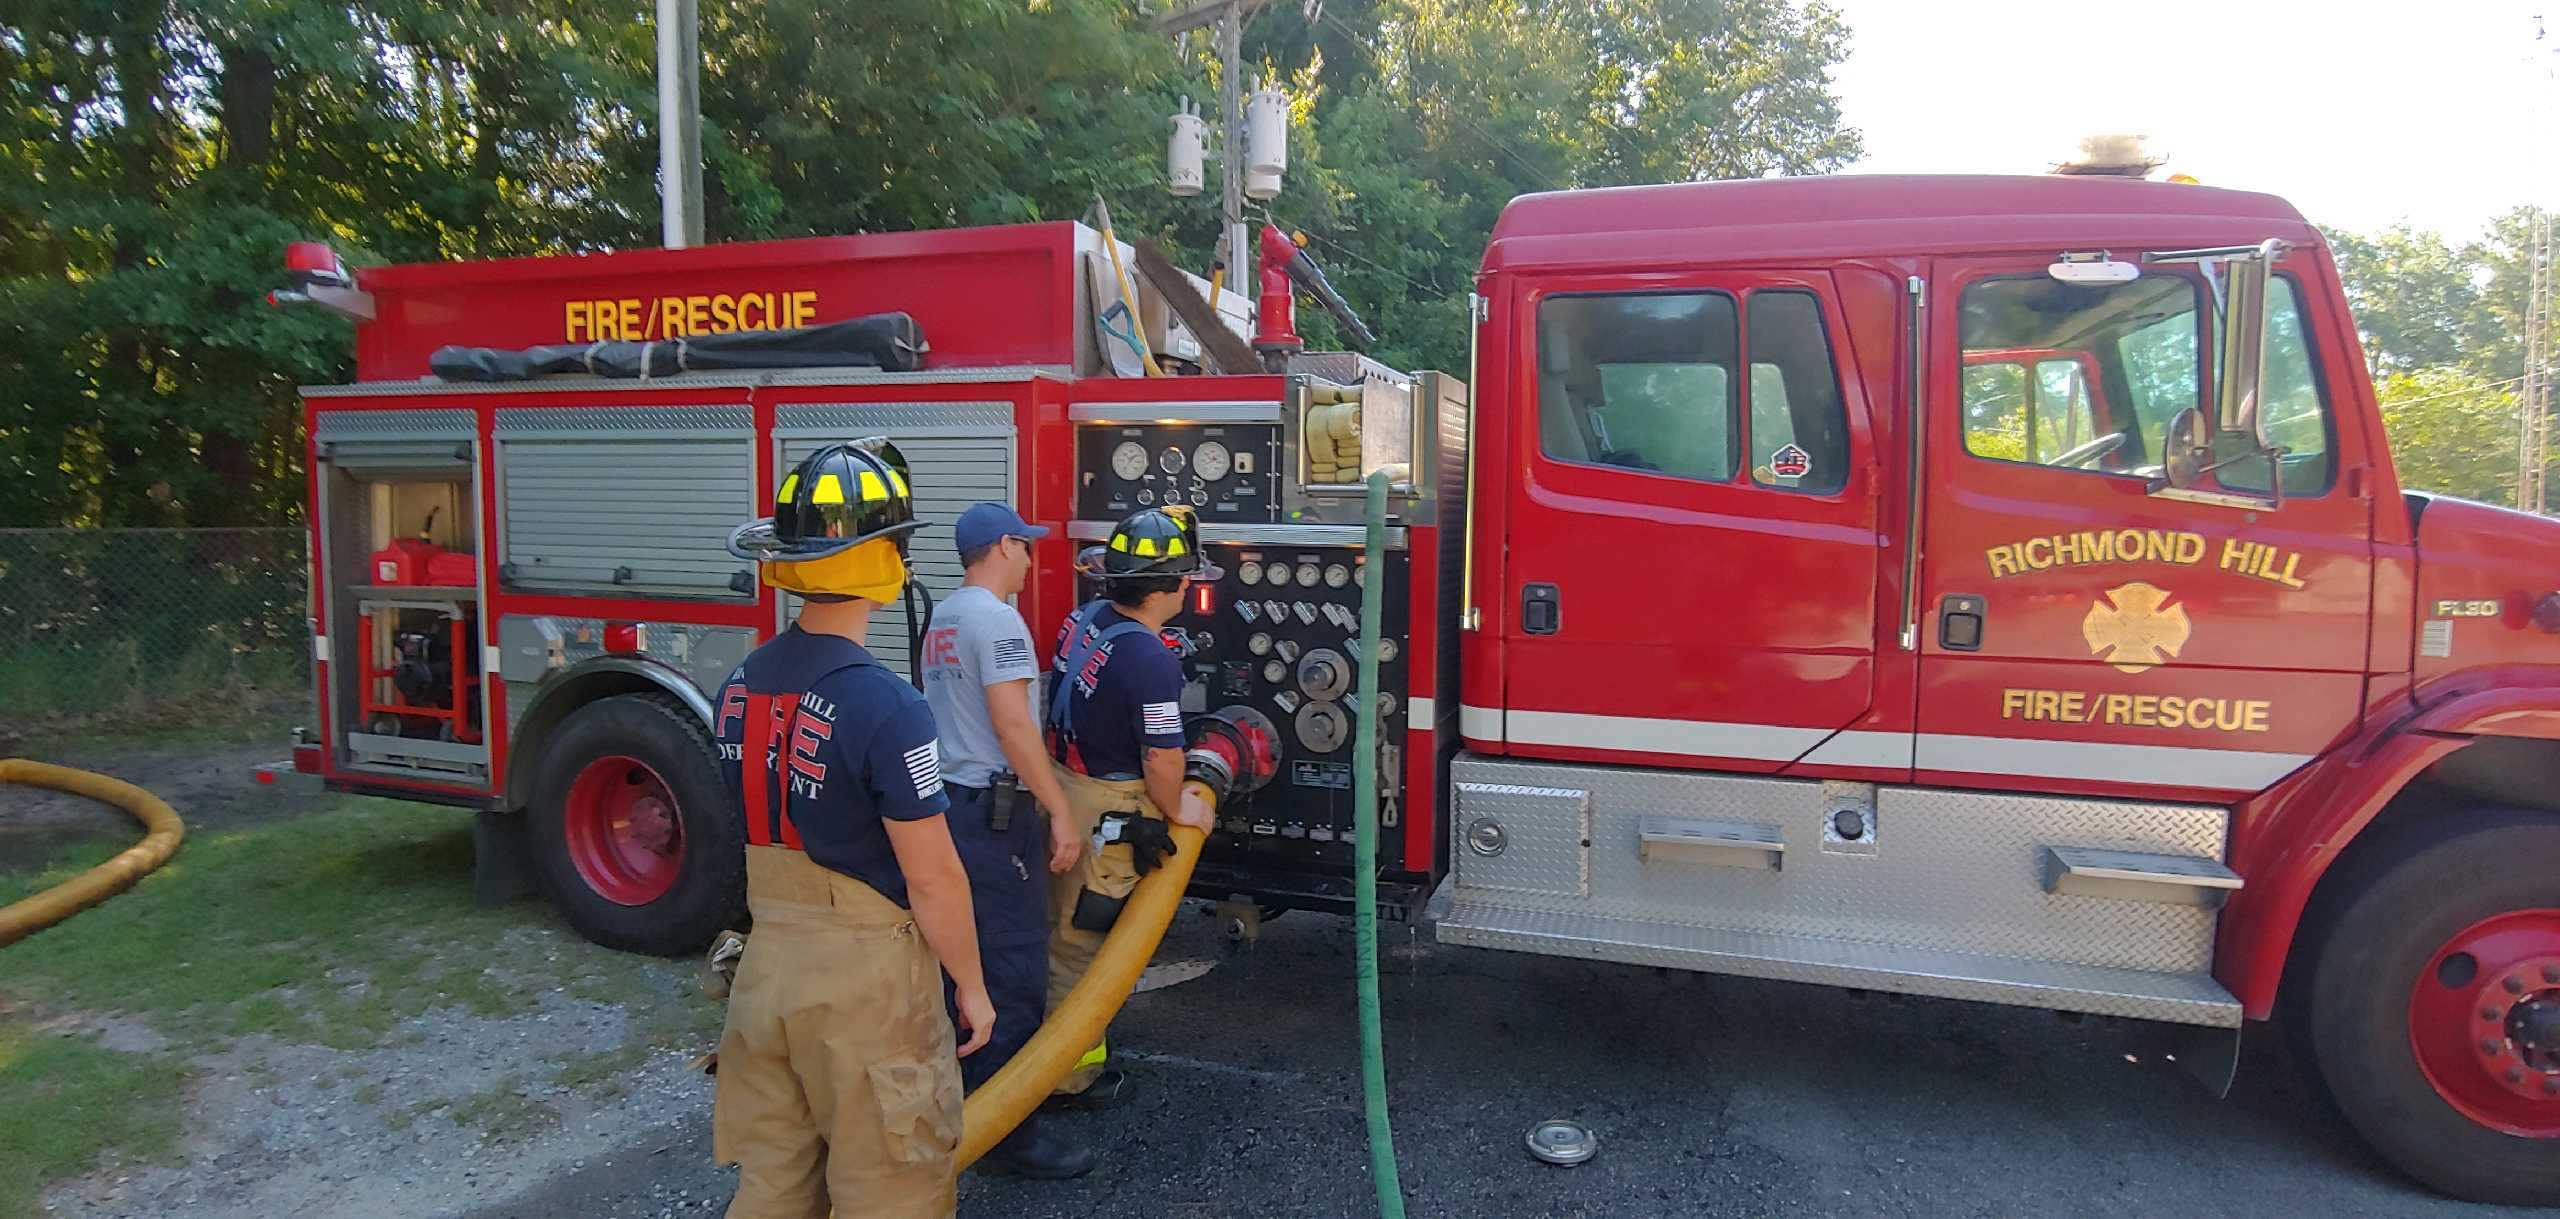 Three firefighters attaching a hose to a fire truck